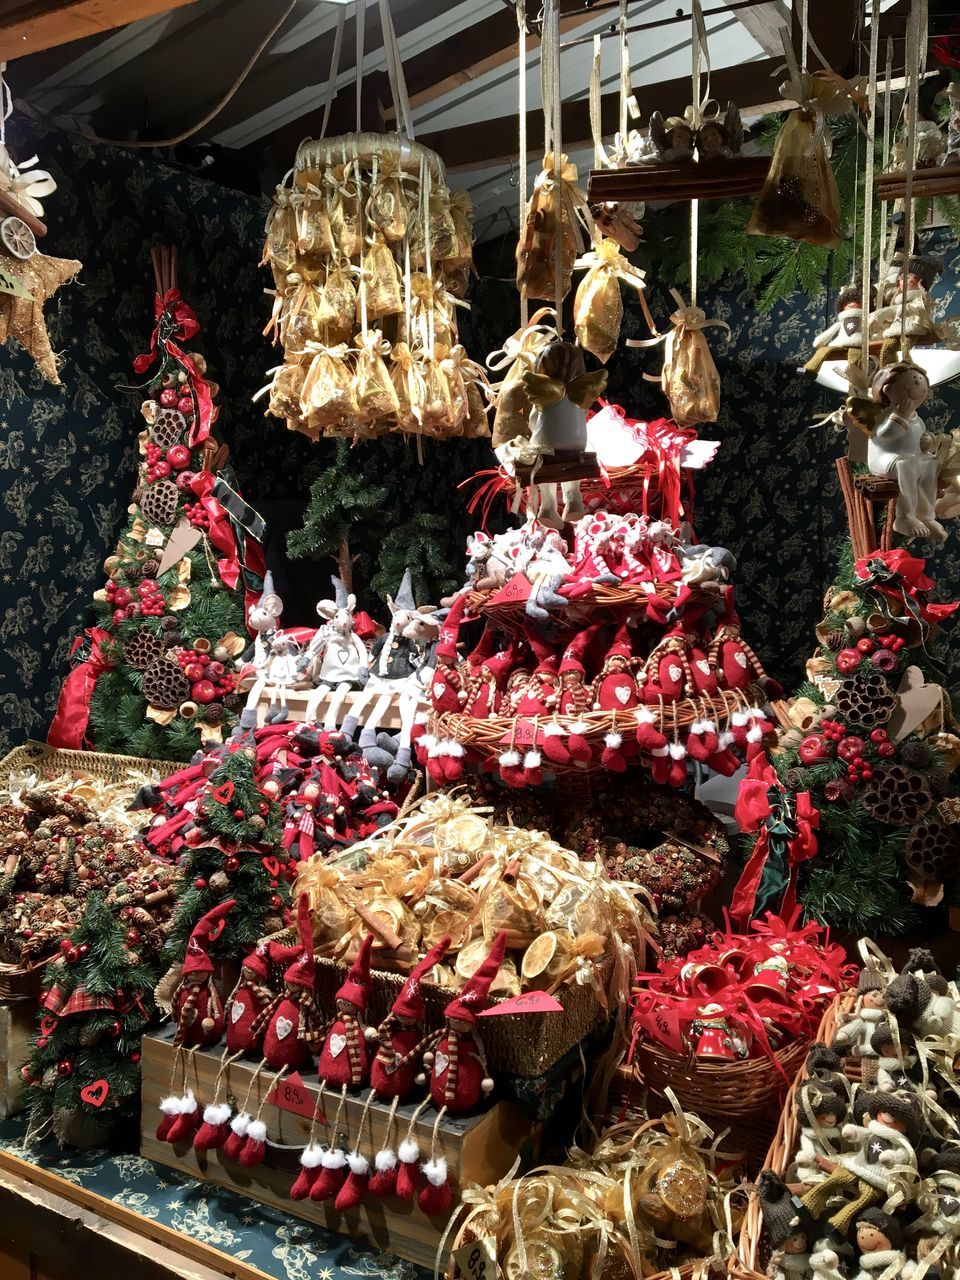 CHRISTMAS DECORATION IN MARKET STALL